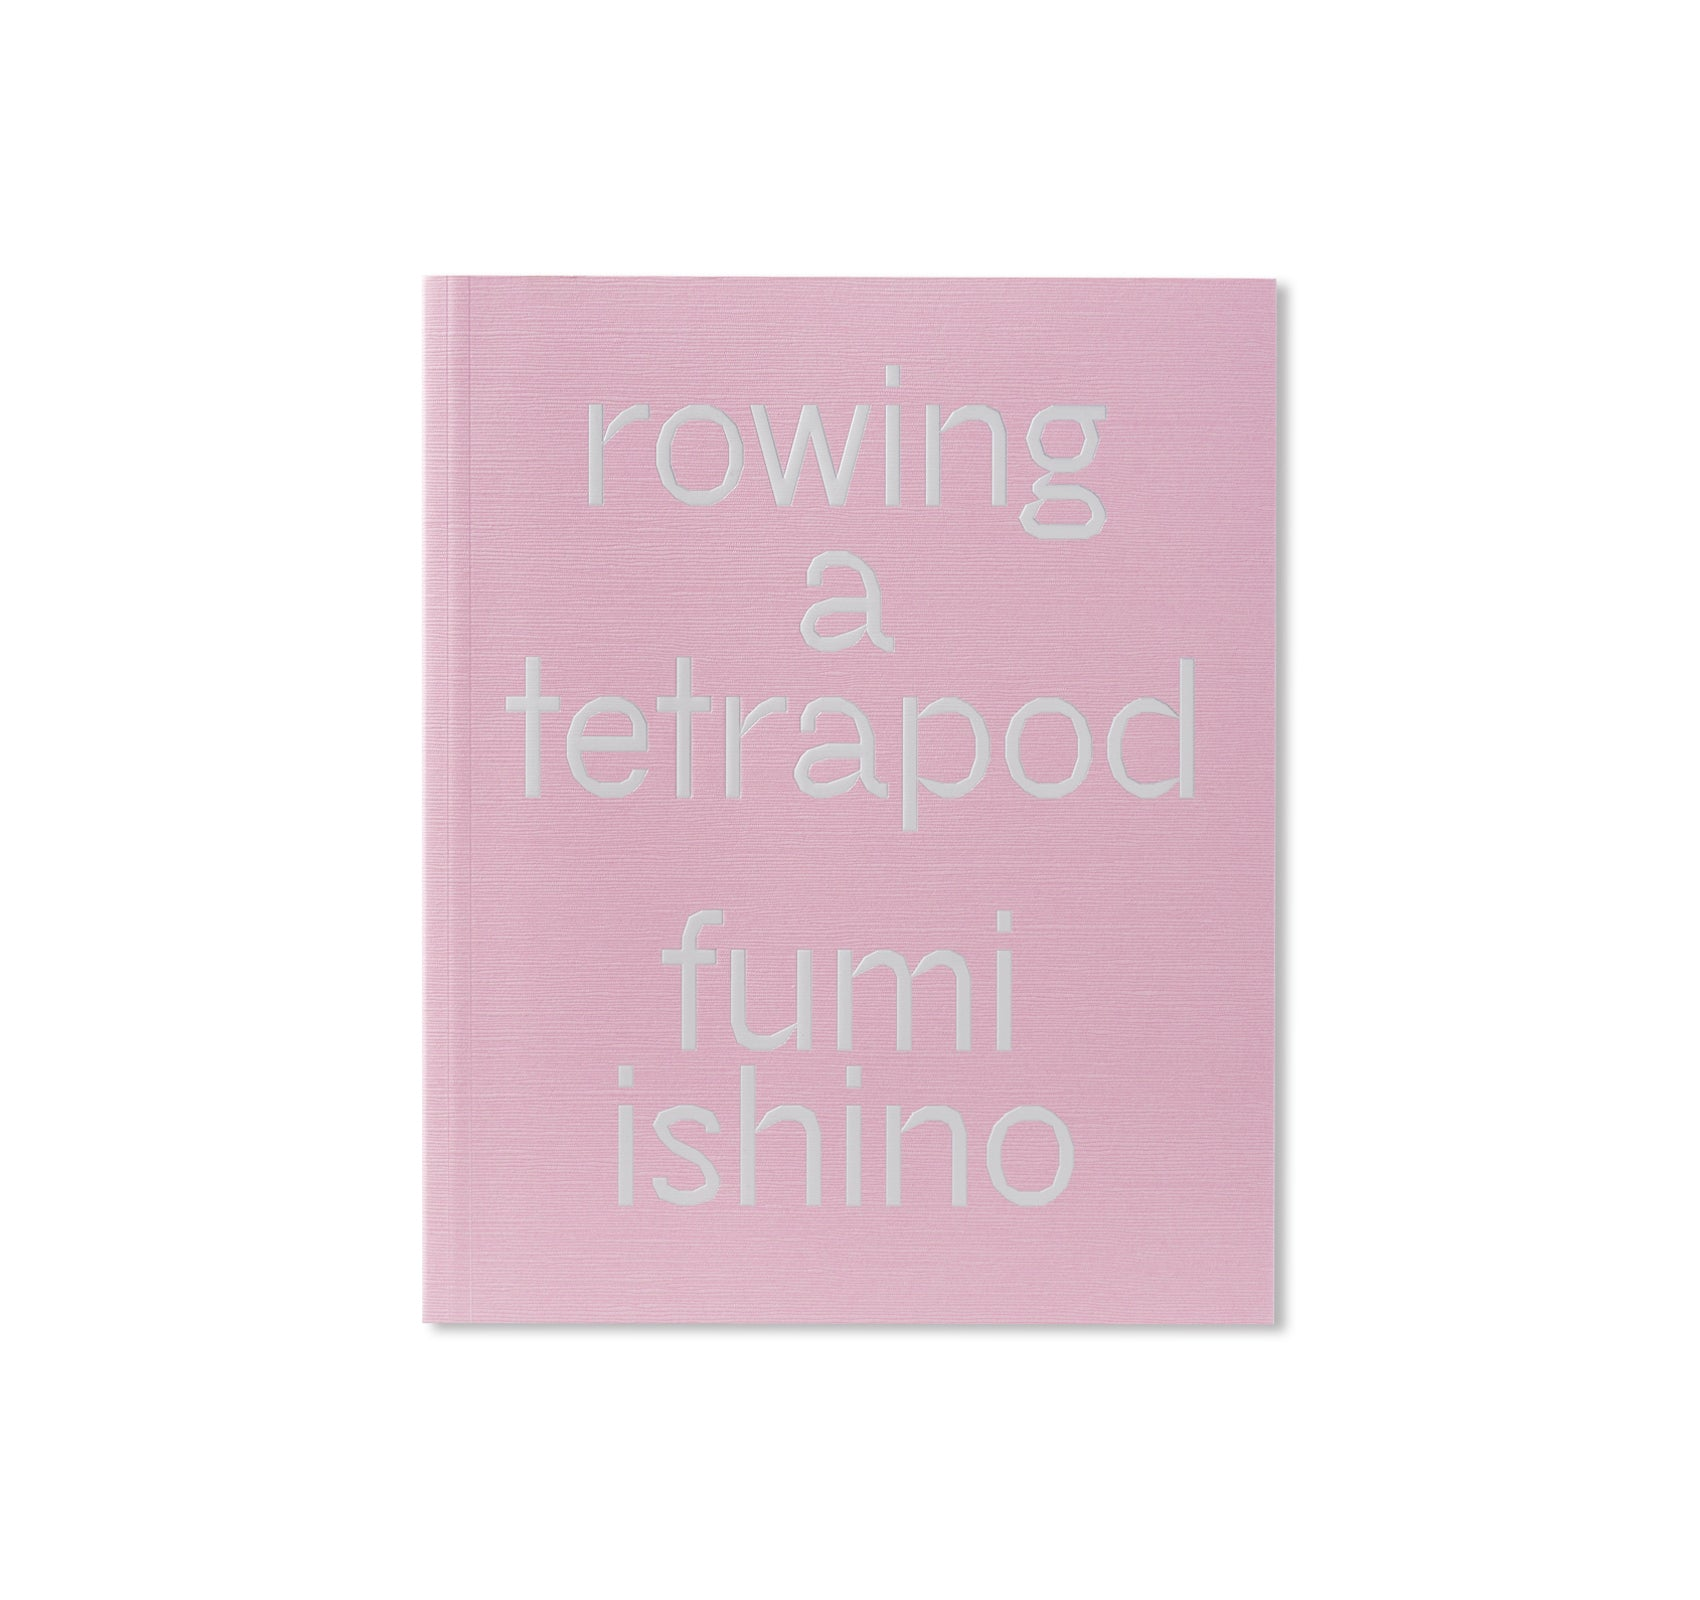 ROWING A TETRAPOD by Fumi Ishino [SIGNED]